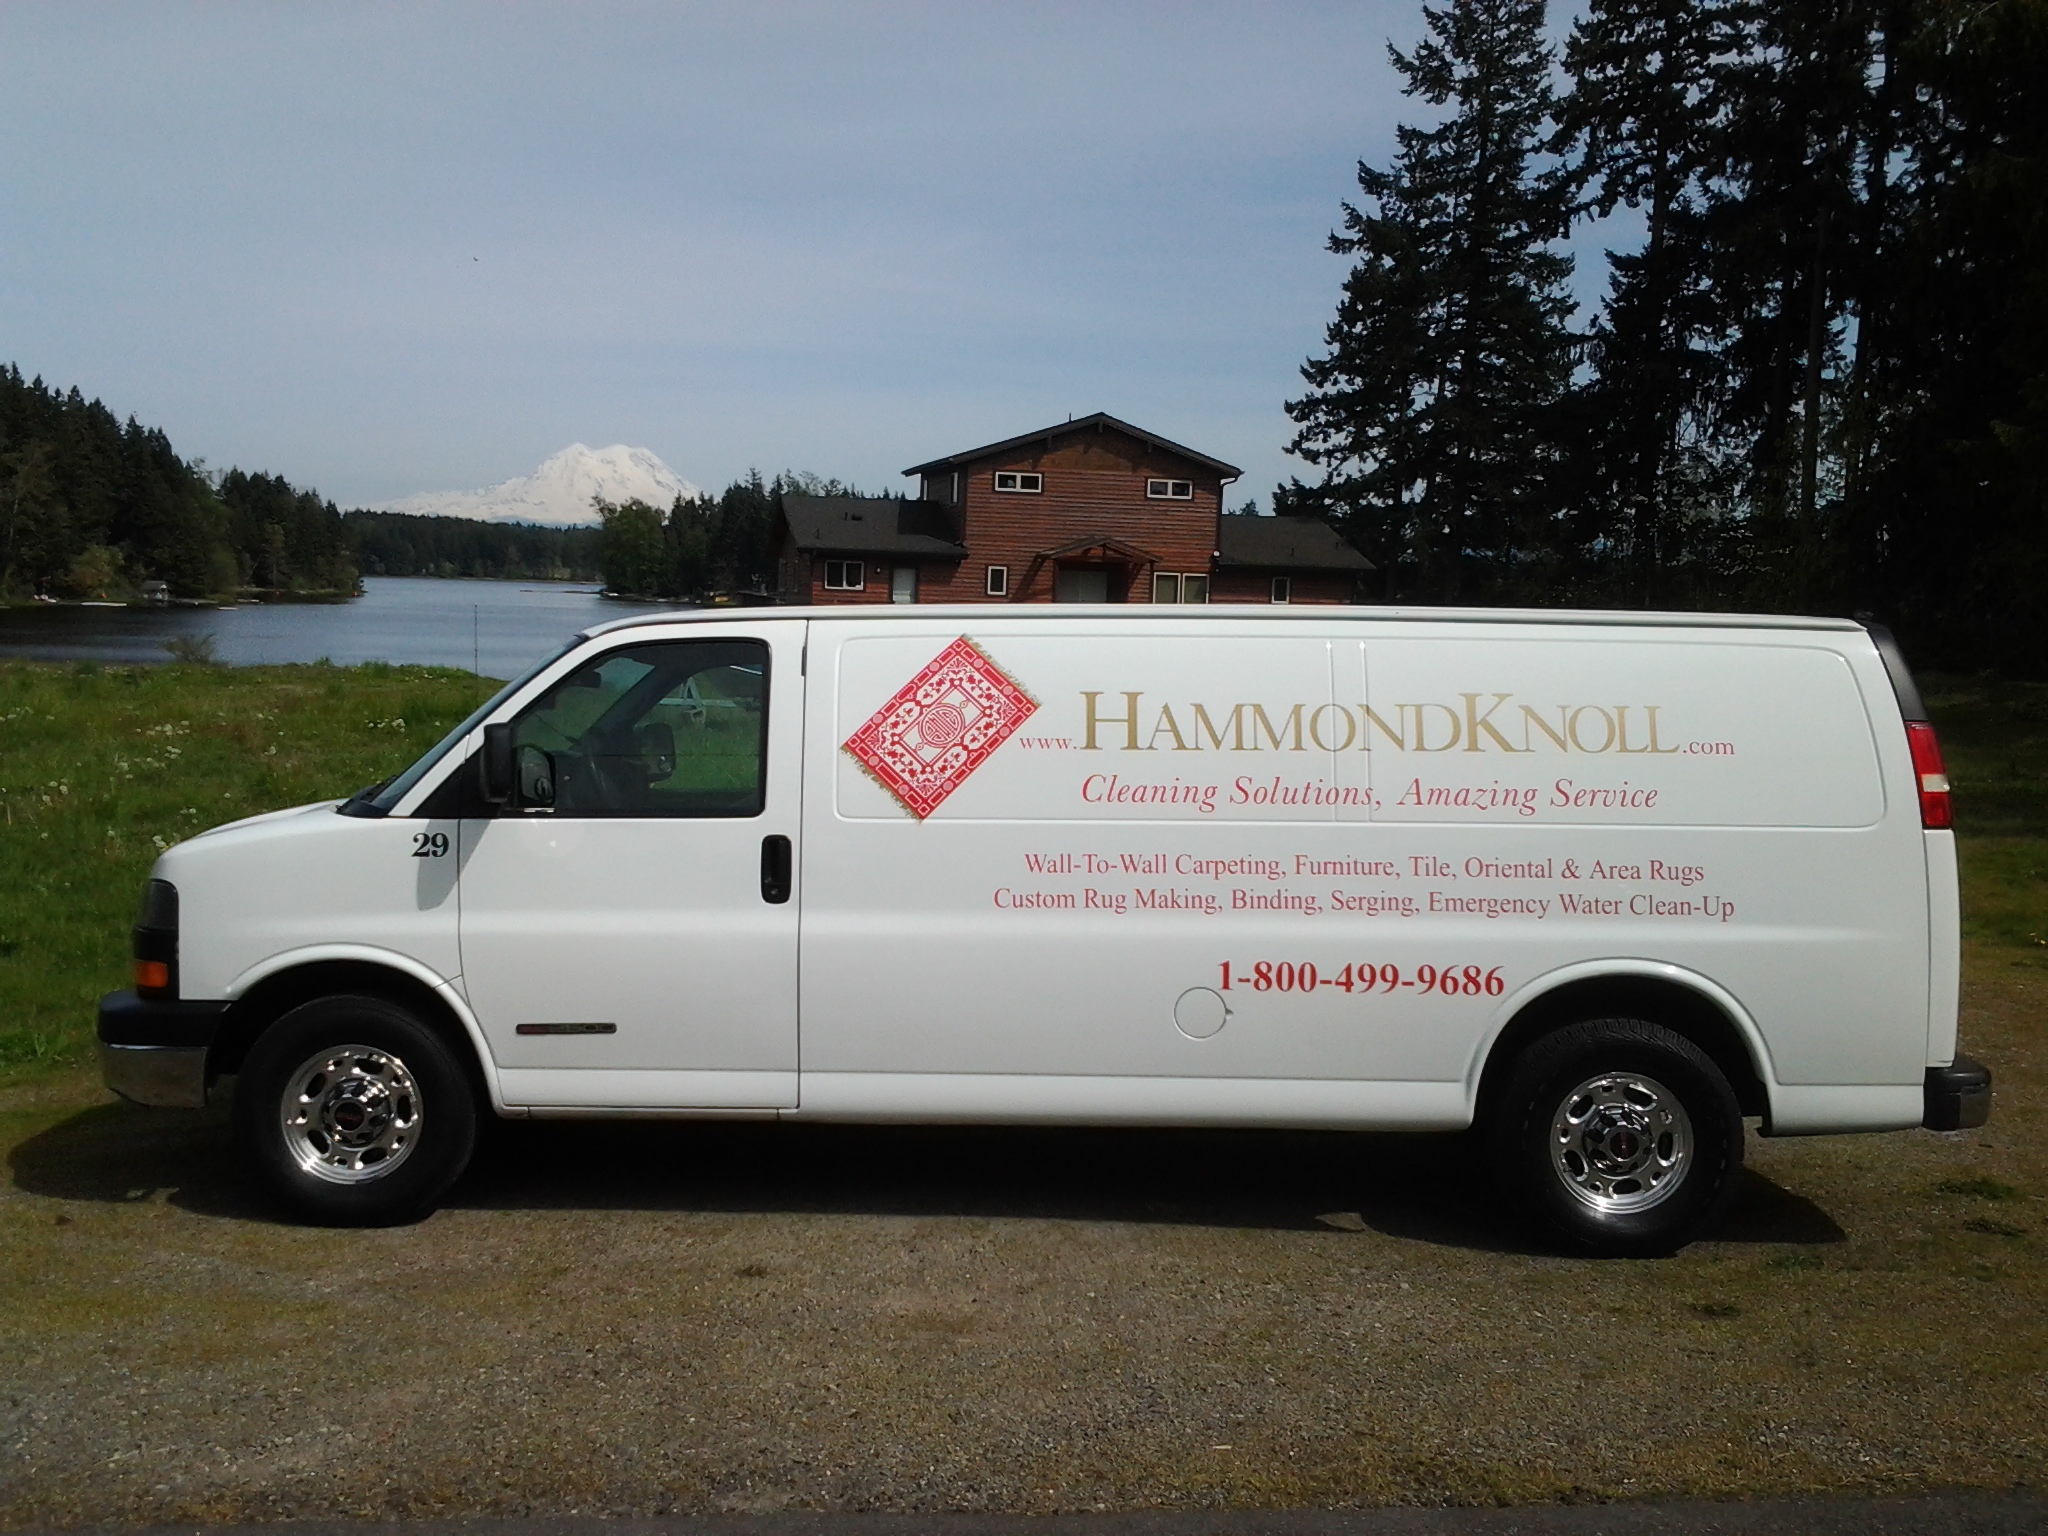 Washington's Top Rated Local® Carpet Cleaner Award Winner: Hammond Knoll